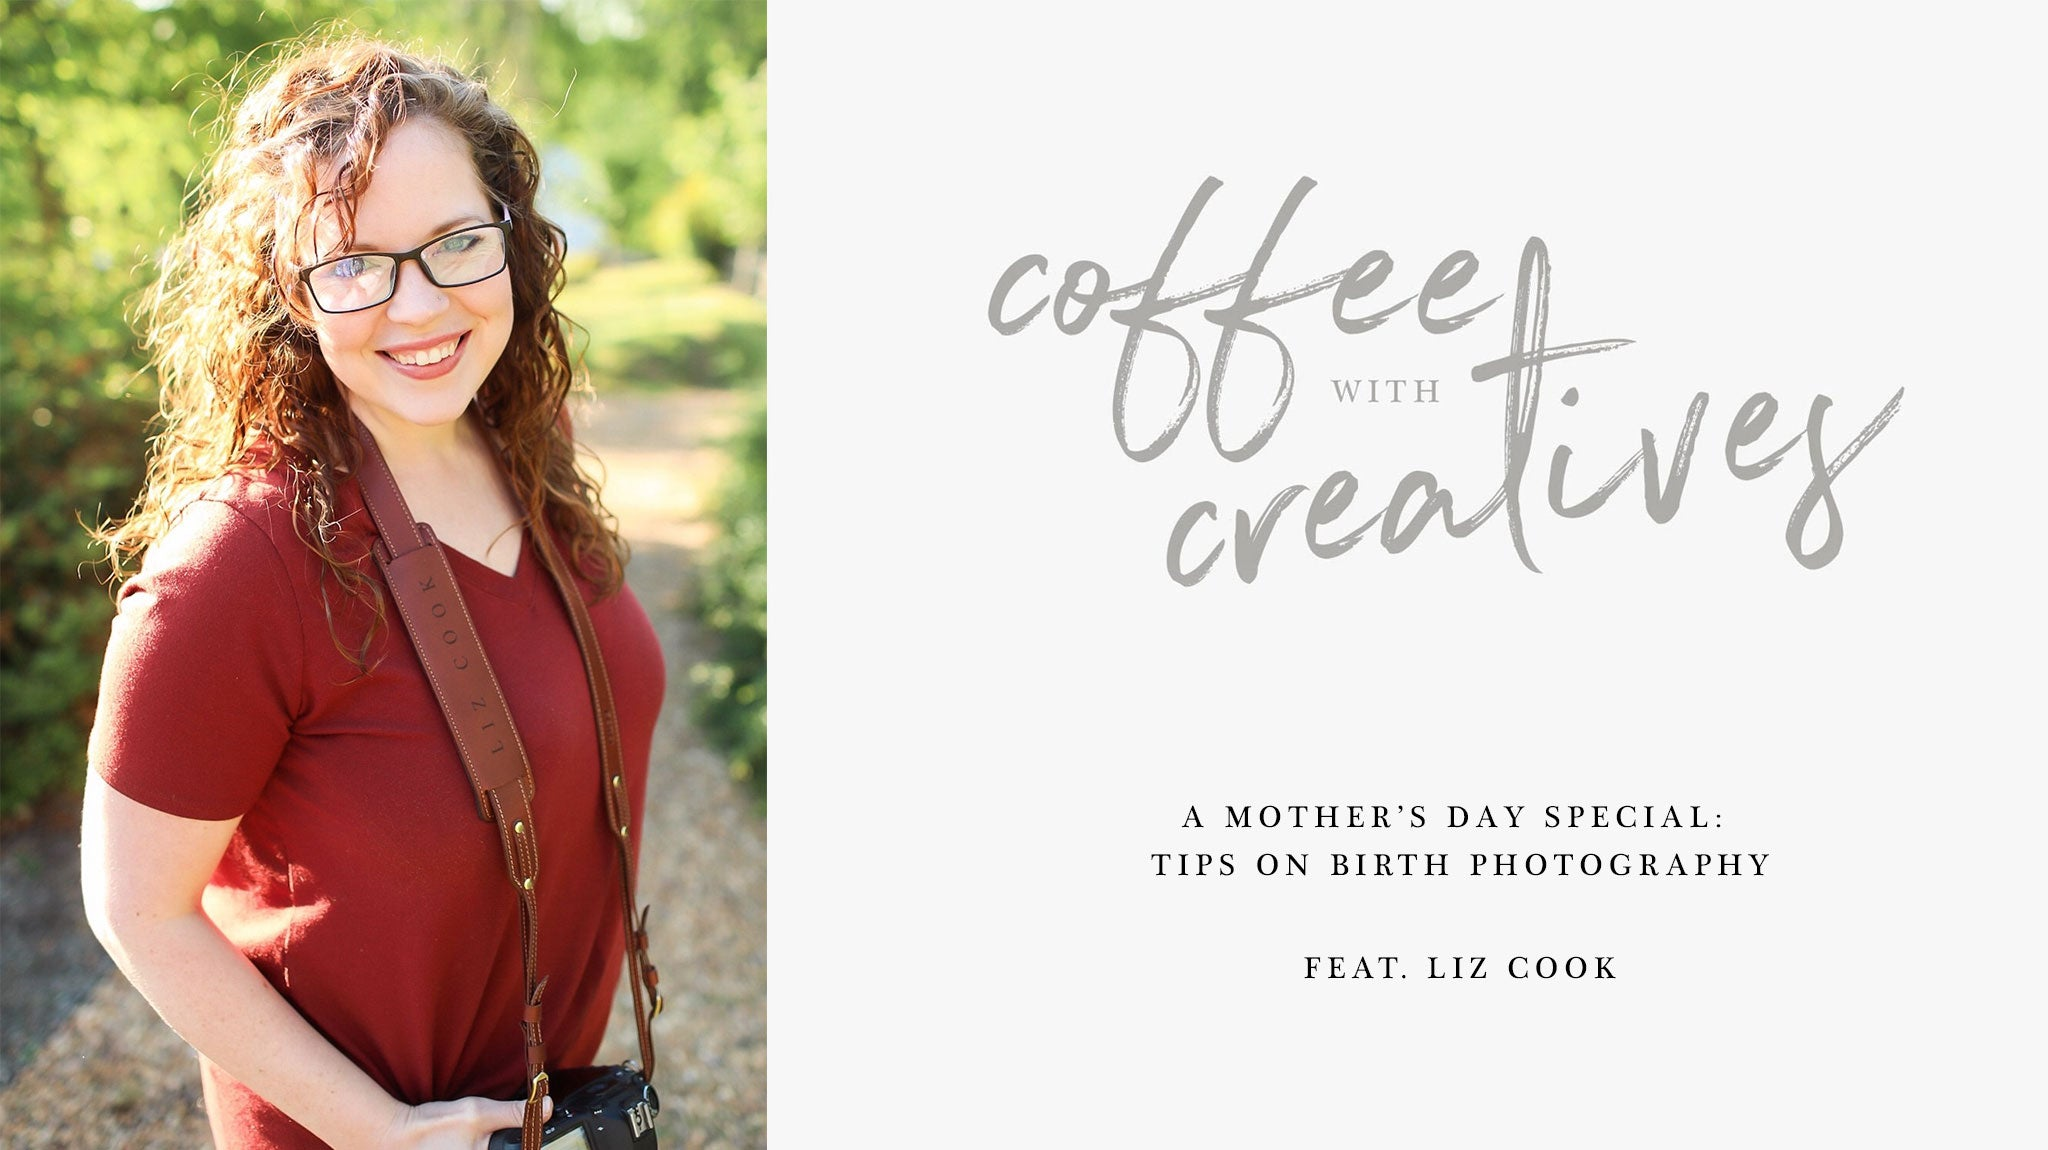 Coffee with Creatives: Liz Cook and Birth Photography